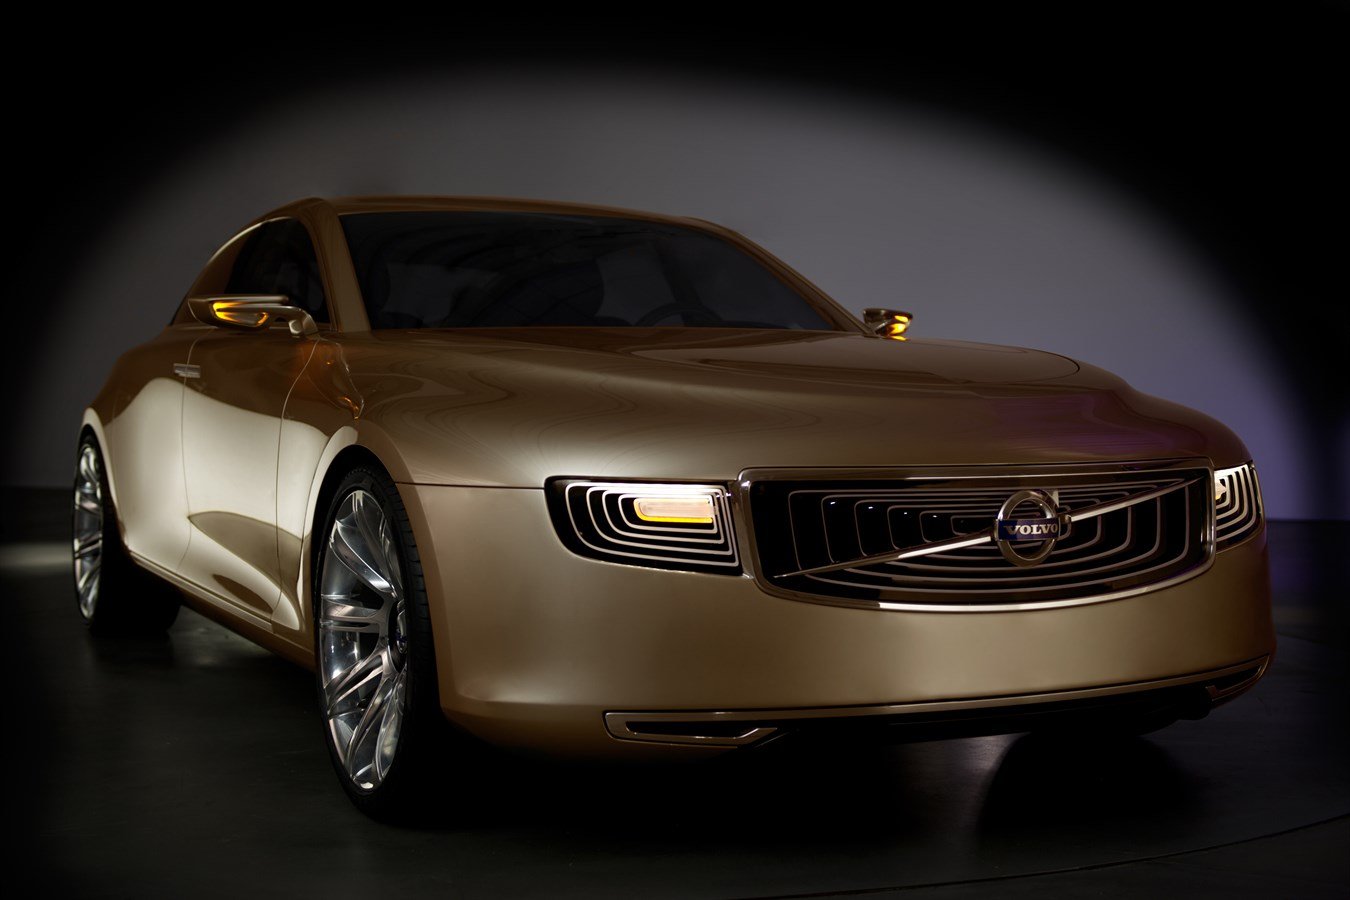 Volvo Concept Universe, front/side